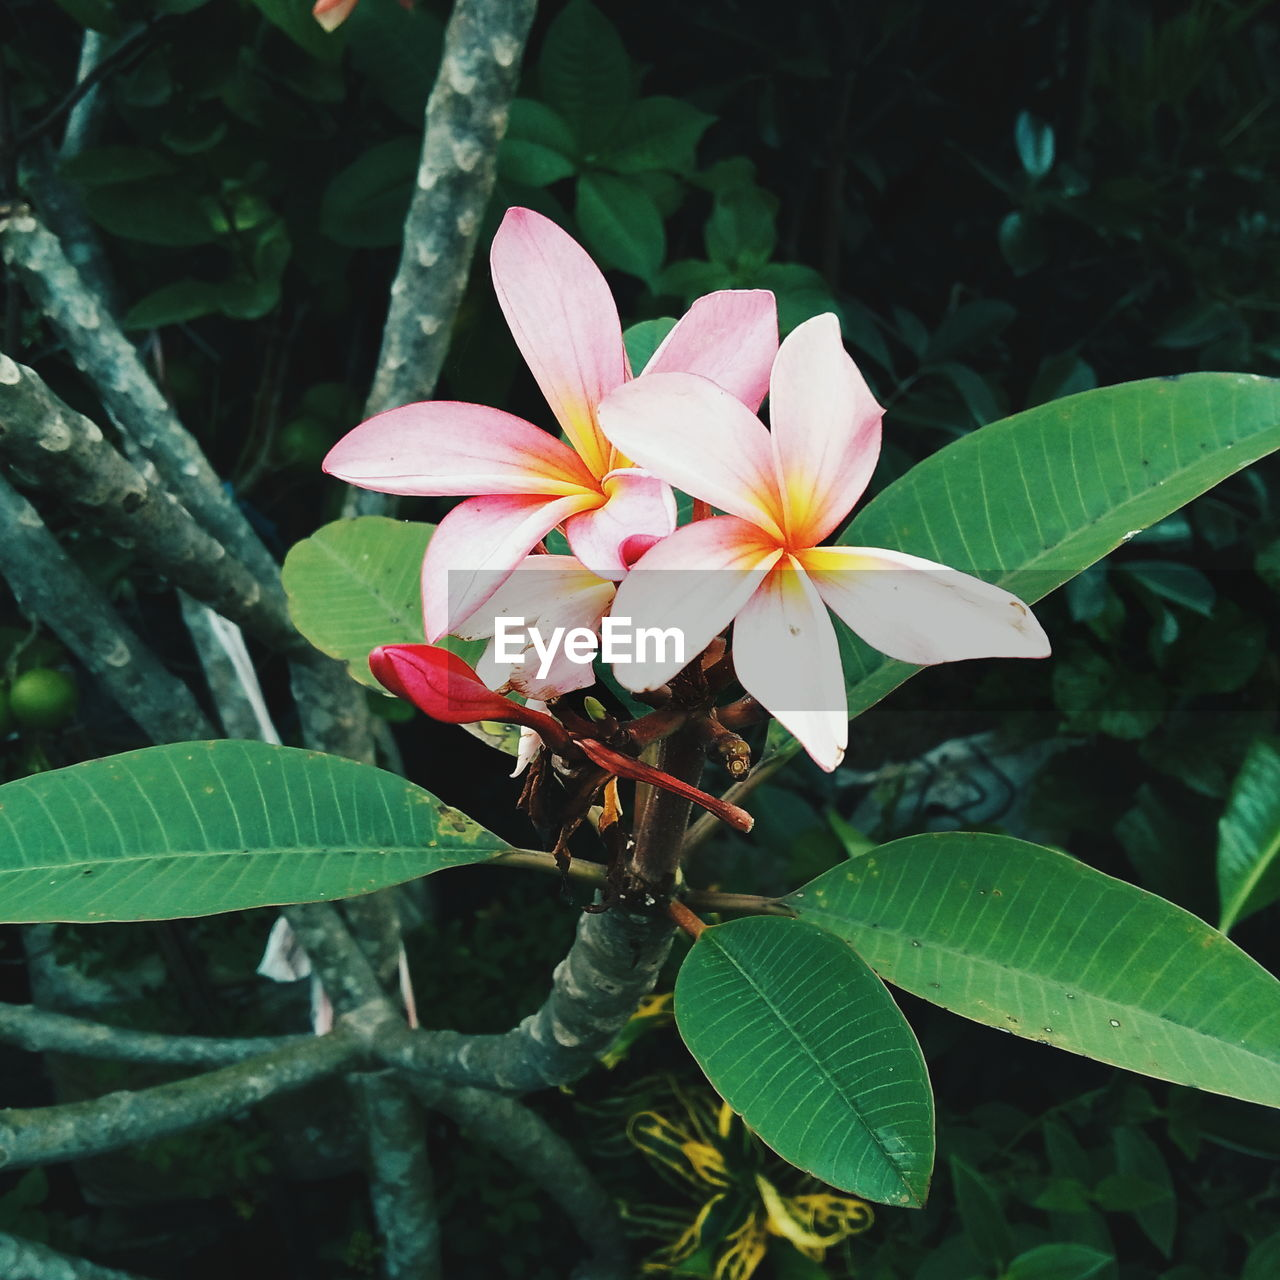 flower, leaf, nature, growth, petal, beauty in nature, fragility, freshness, flower head, plant, day, outdoors, green color, blooming, no people, close-up, animal themes, periwinkle